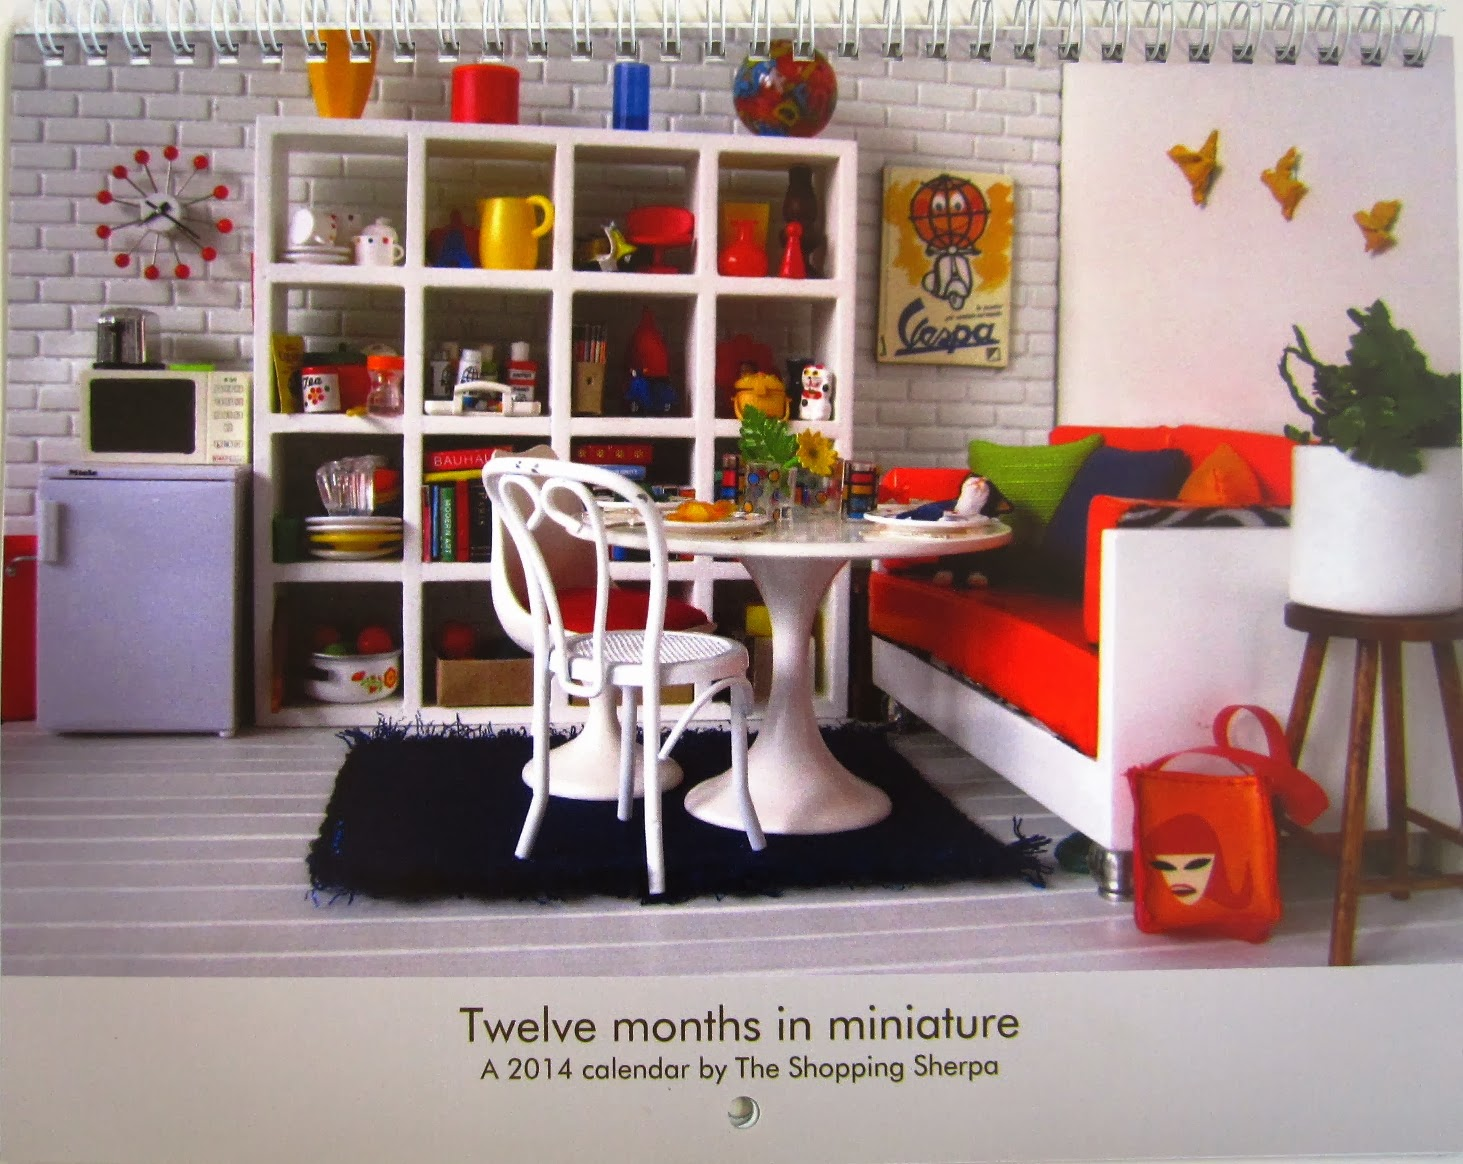 Twelve months in miniature: a 2014 calendar by The Shopping Sherpa